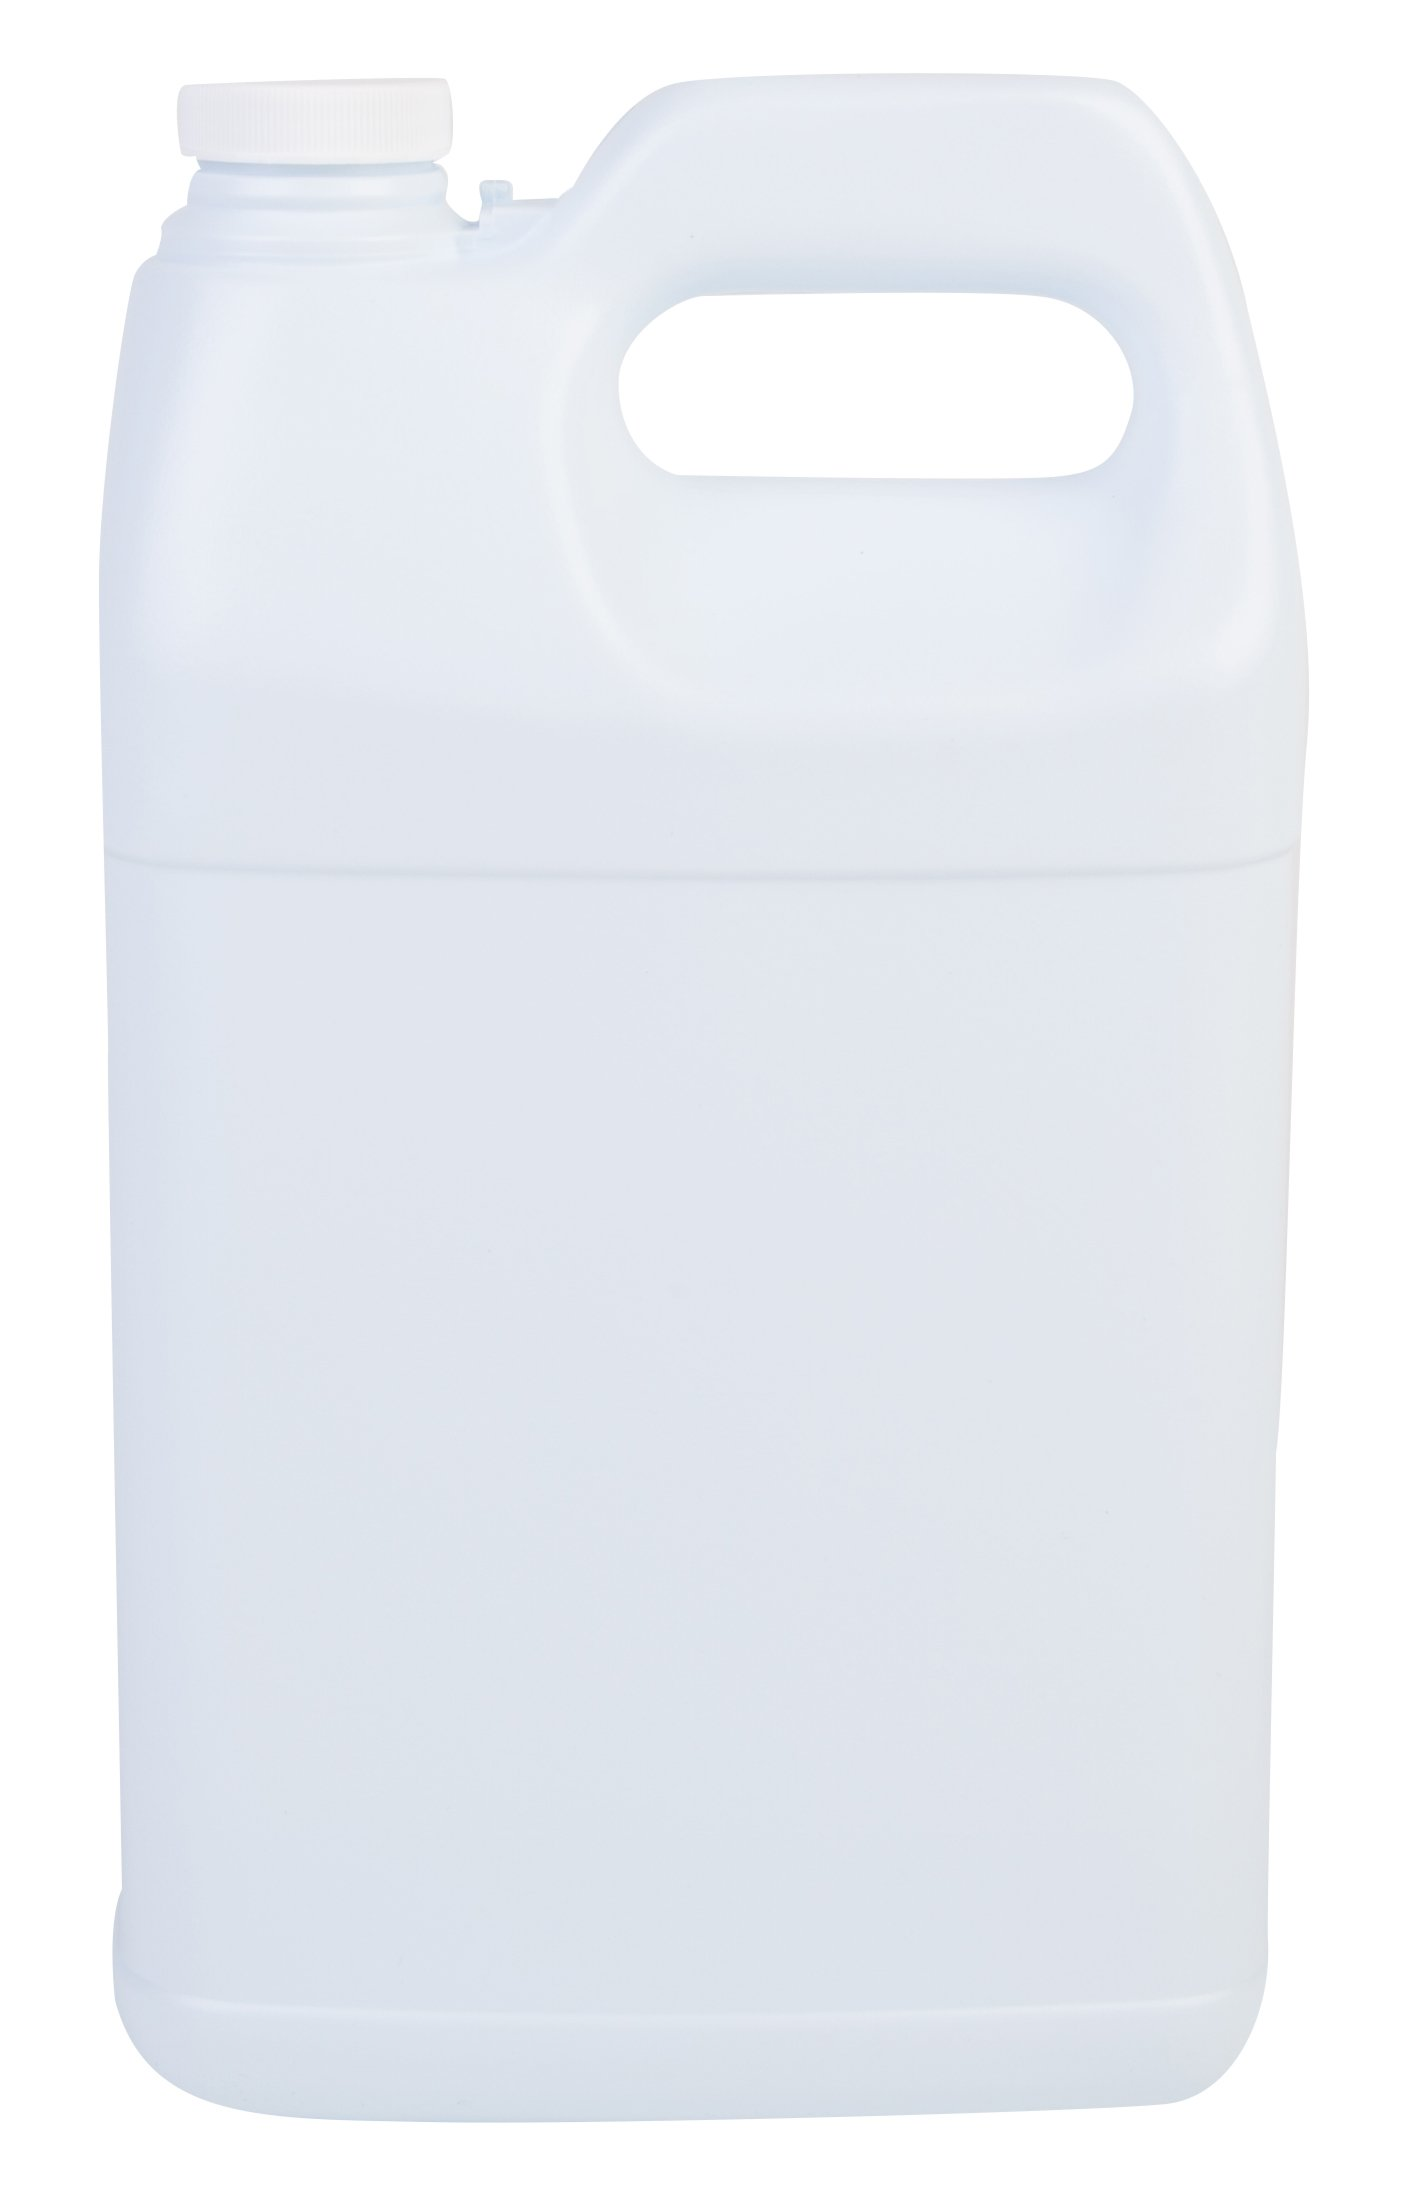 Hudson Exchange F-Style HDPE Plastic Jug with 38 mm Caps, 1 gal, White, 6 Piece